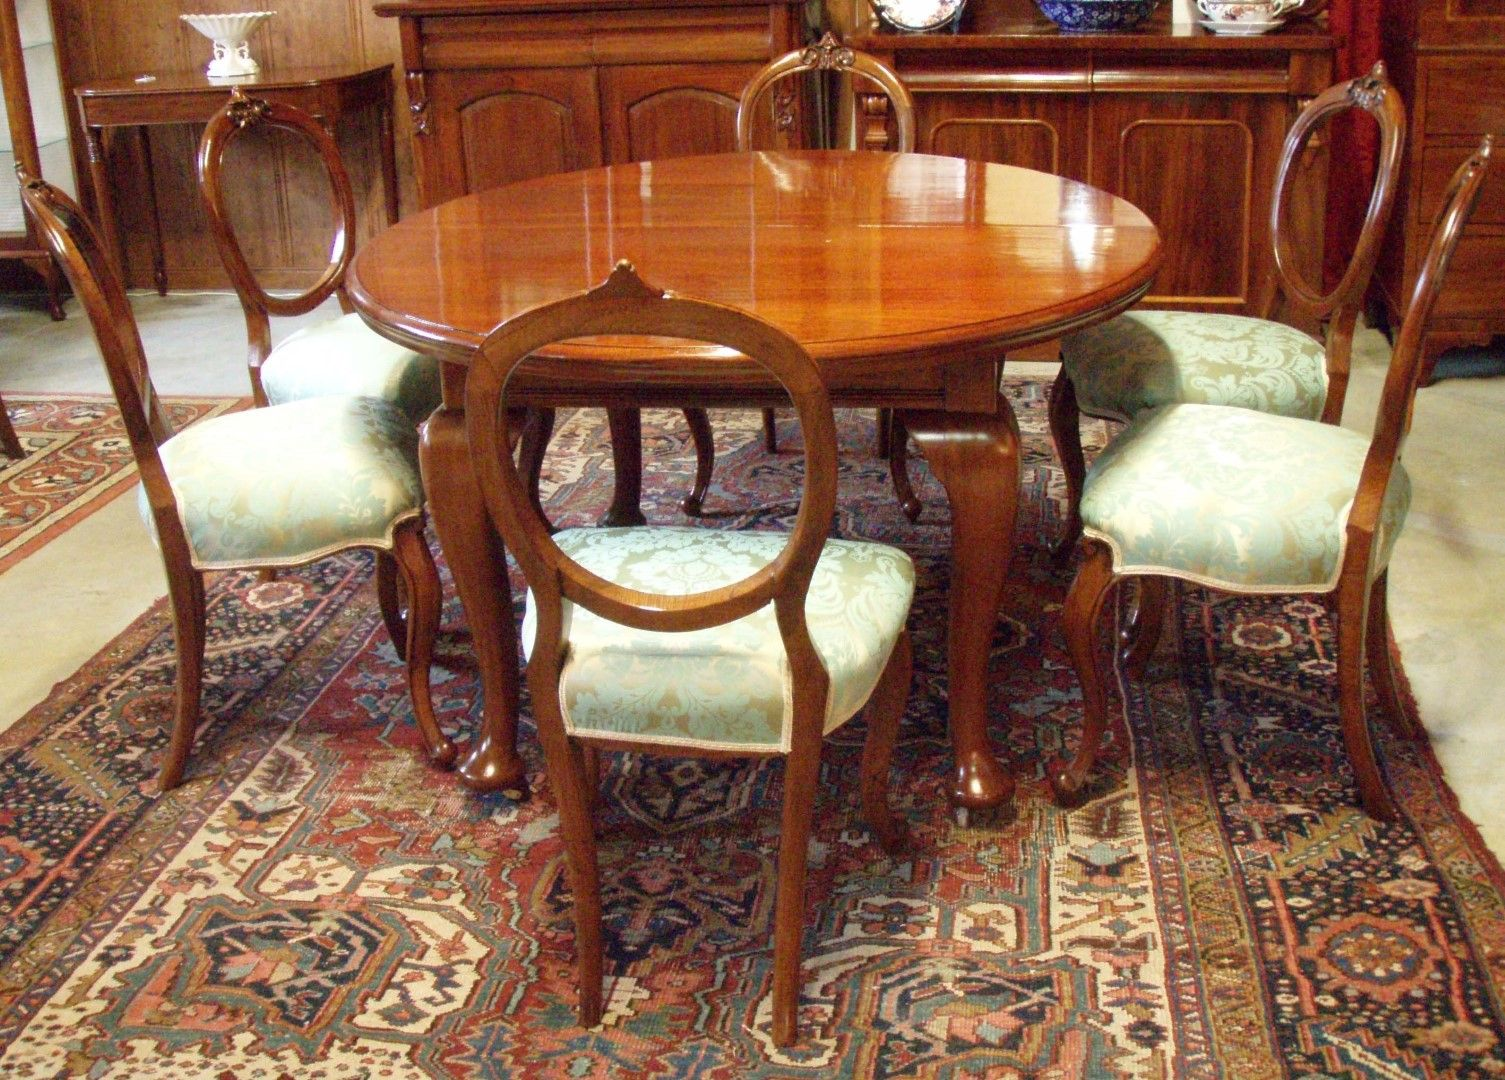 Antique victorian dining chairs - Awesome Antique Furniture Antique Cupboards Antique Tables Antique With Victorian Dining Chairs